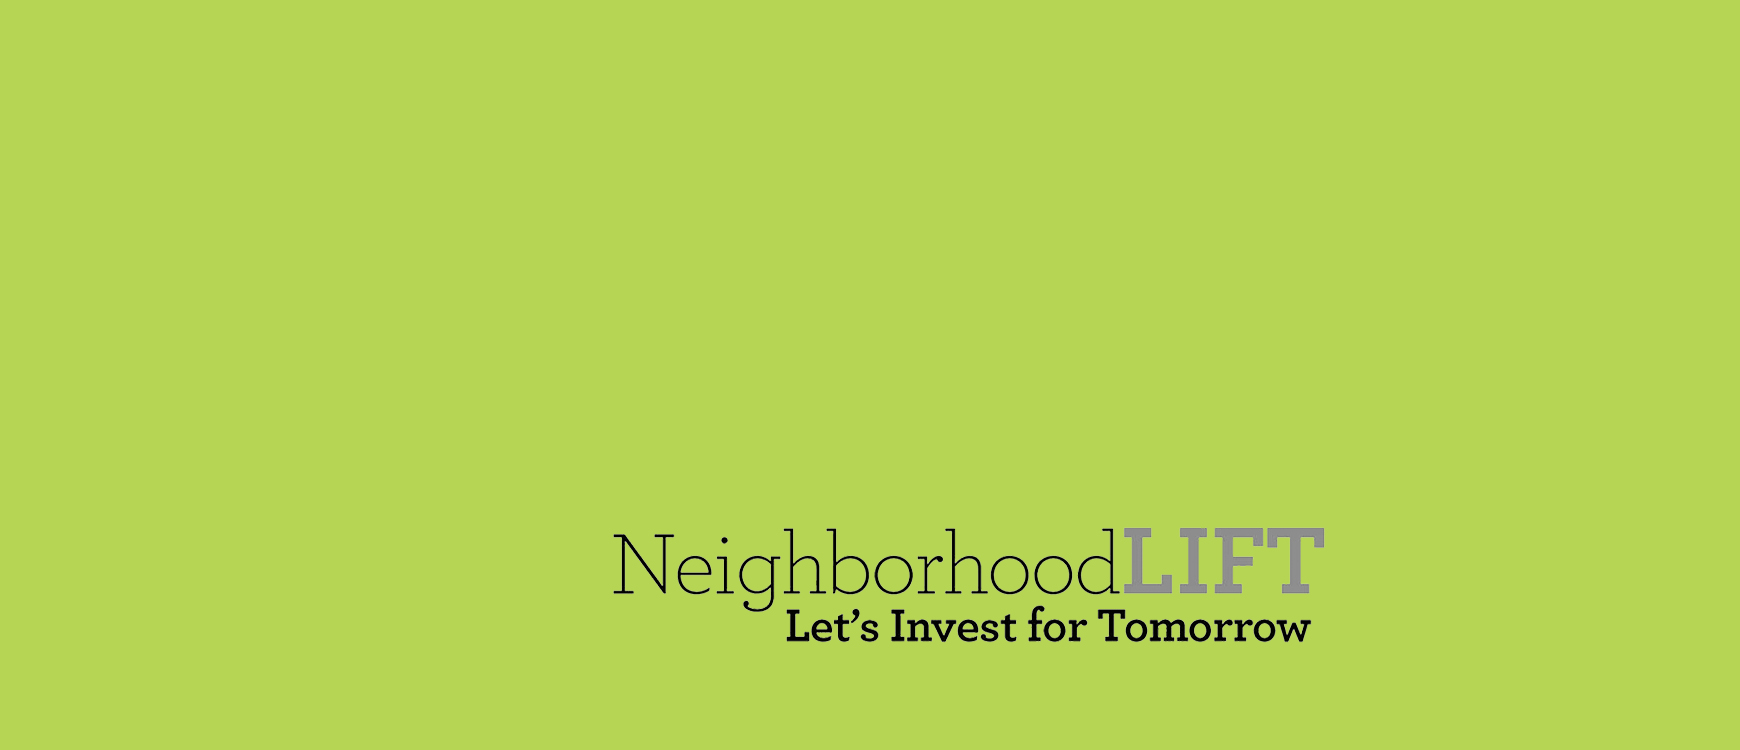 NeighborhoodLIFT